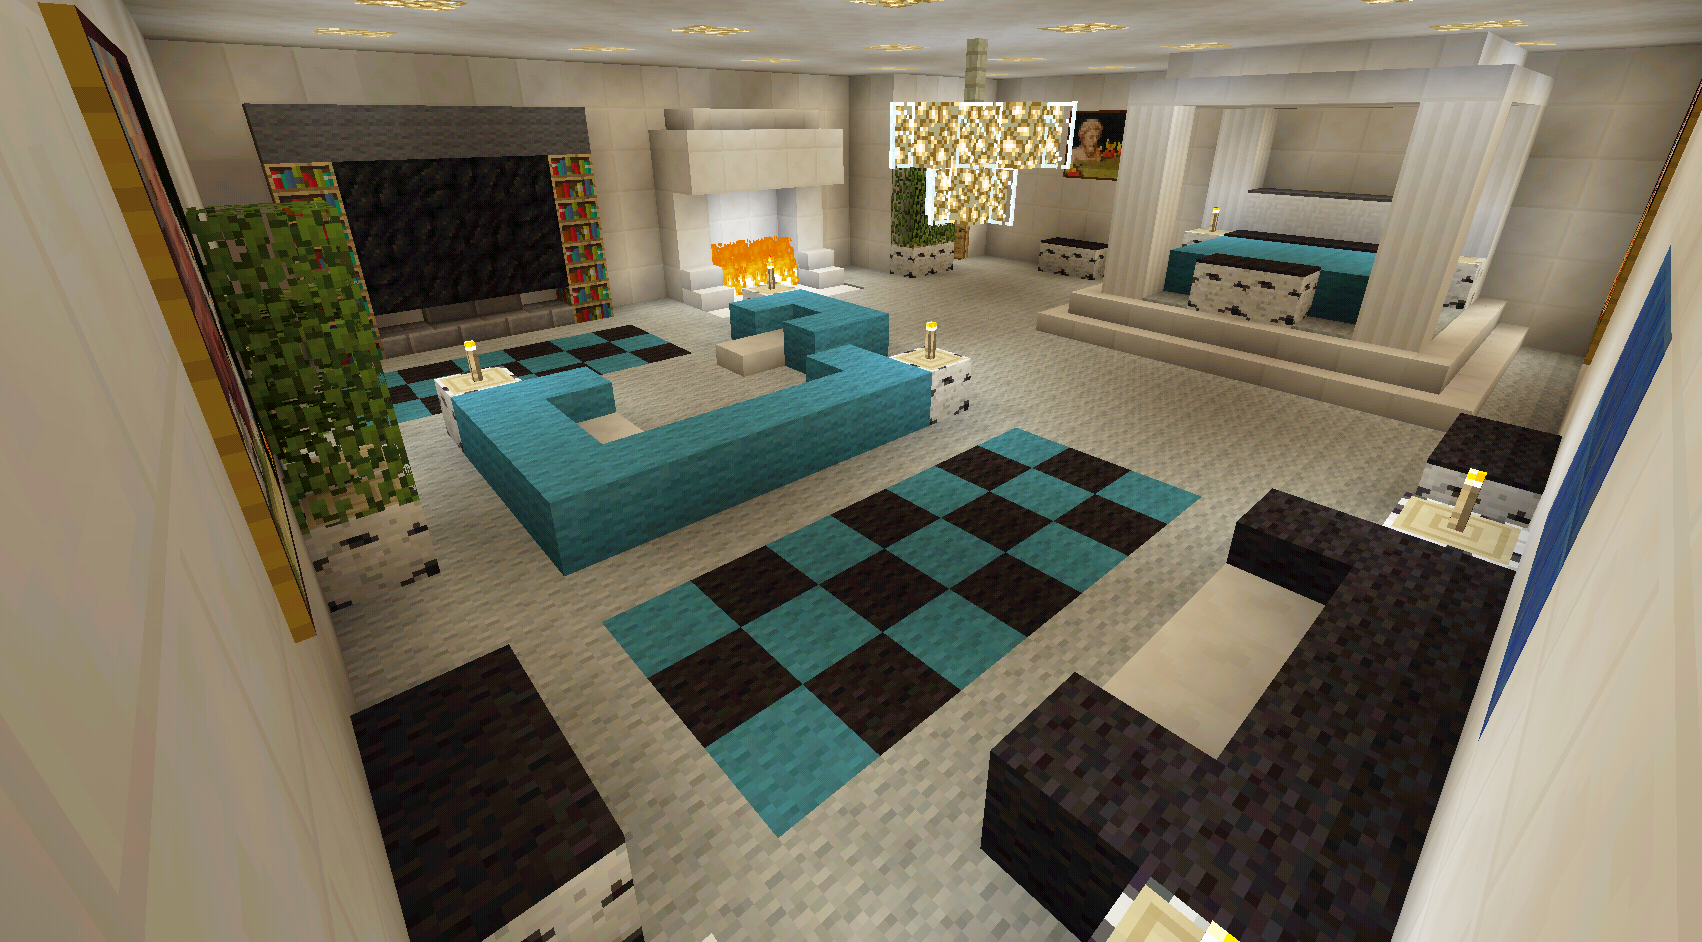 . Minecraft Bedroom with Living Area Furniture and Canopy Bed and